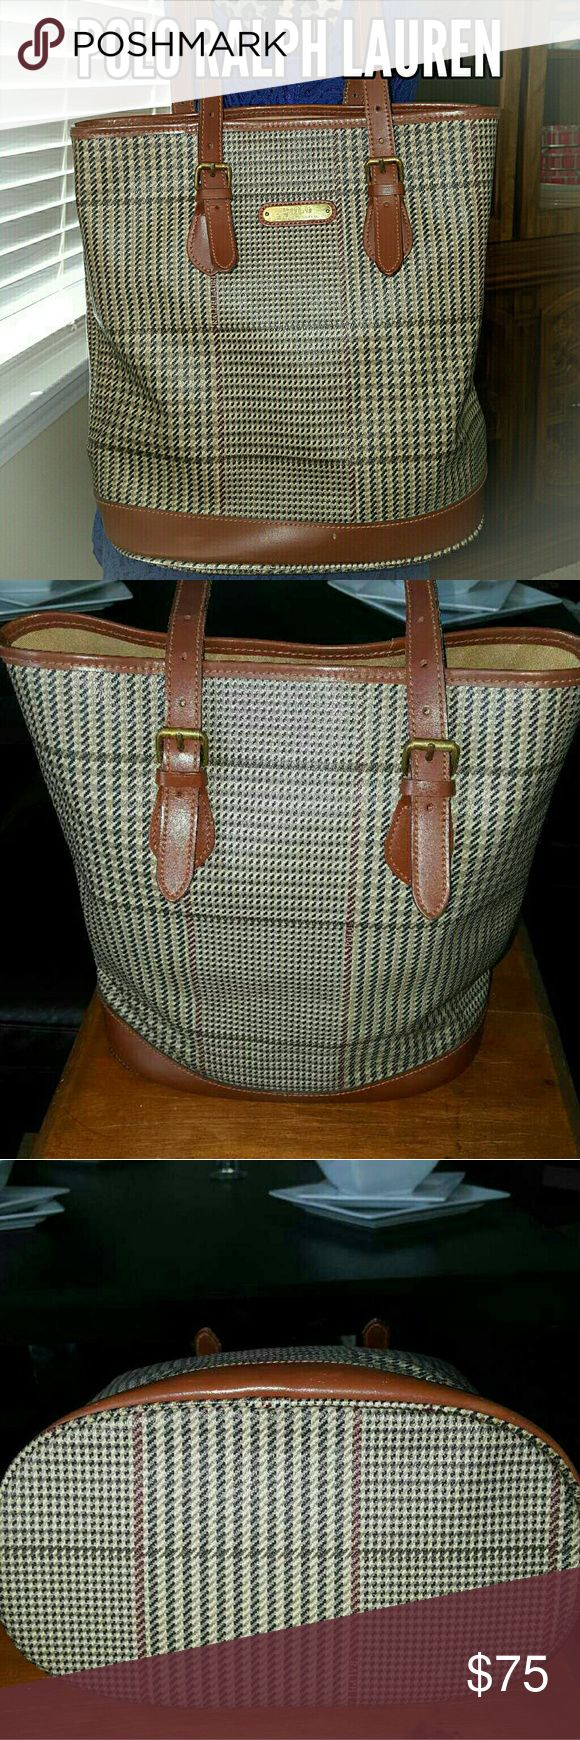 """Polo Ralph Lauren Houndstooth Bag FOR THE LOVE OF VINTAGE!!!  This bag is amazing! Holds a ton and is nuetral for every season! Coated Canvas Brown Leather trim!!  Good Condition   A few markings inside and out (see photos)  No holes tears or major damage  DIMENSIONS 13"""" X 13"""" 11"""" Strap Drop Polo by Ralph Lauren Bags Totes"""